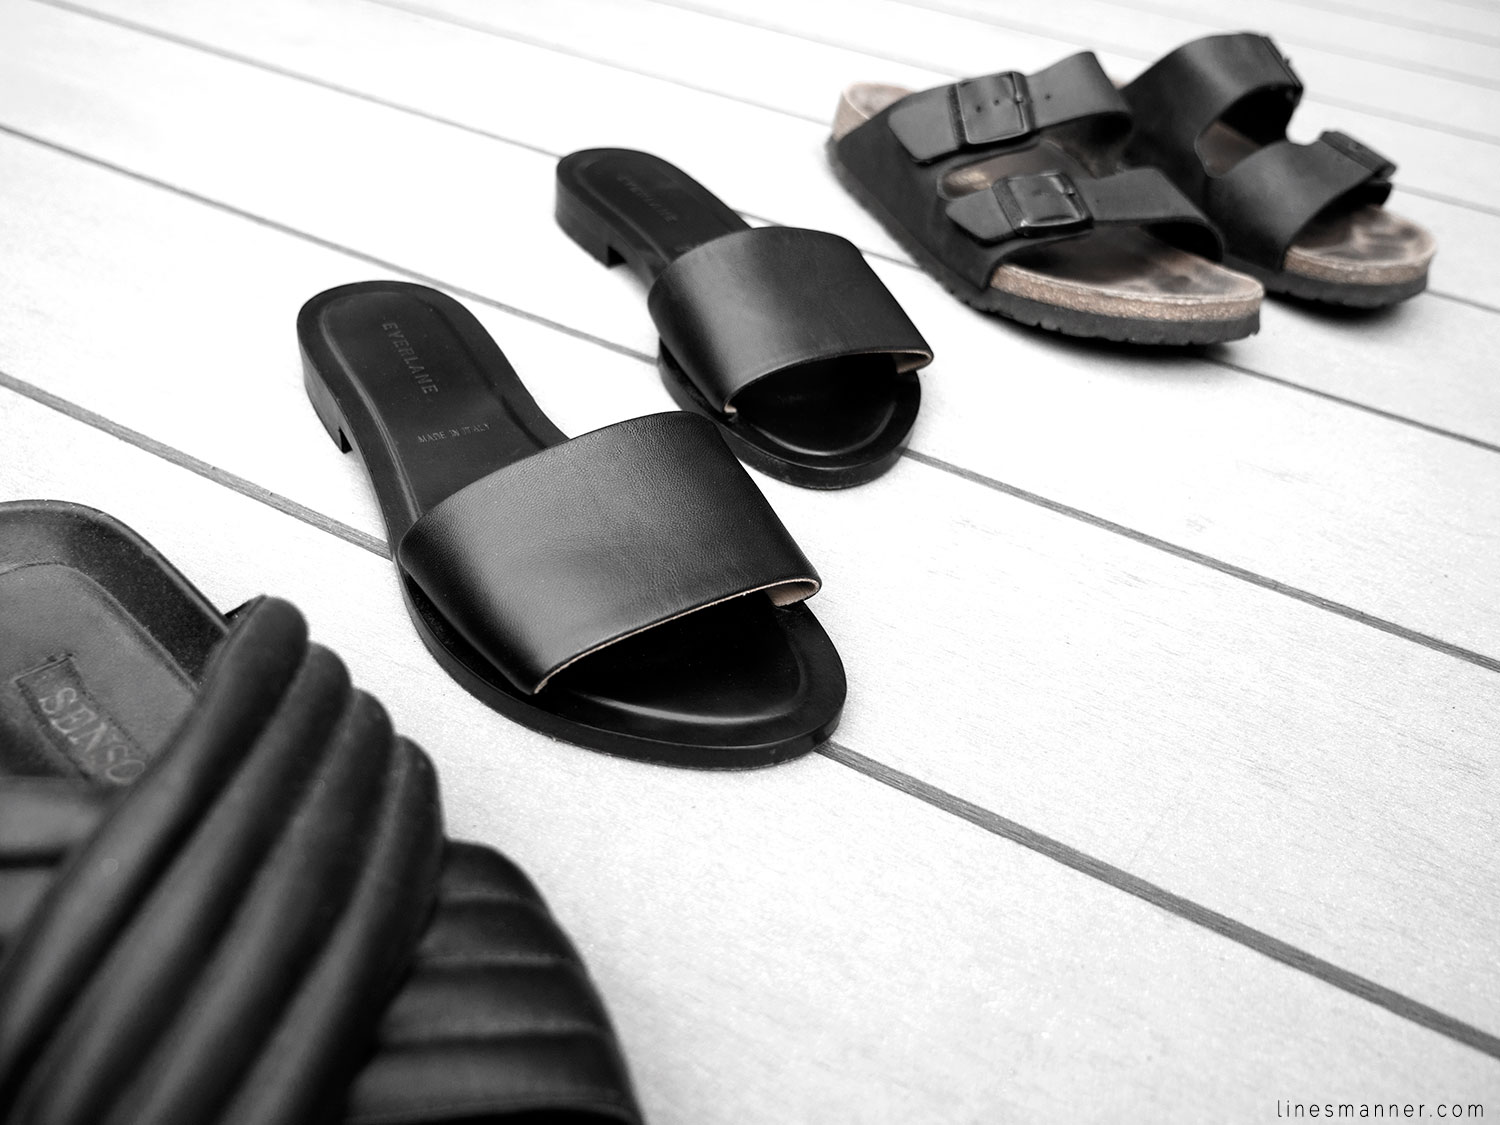 Lines-Manner-Summer-Shoes-Slides-Black-Leather-Minimal-Off_Duty-Senso_Everlane-Birkenstock-Essentials-Situation-7